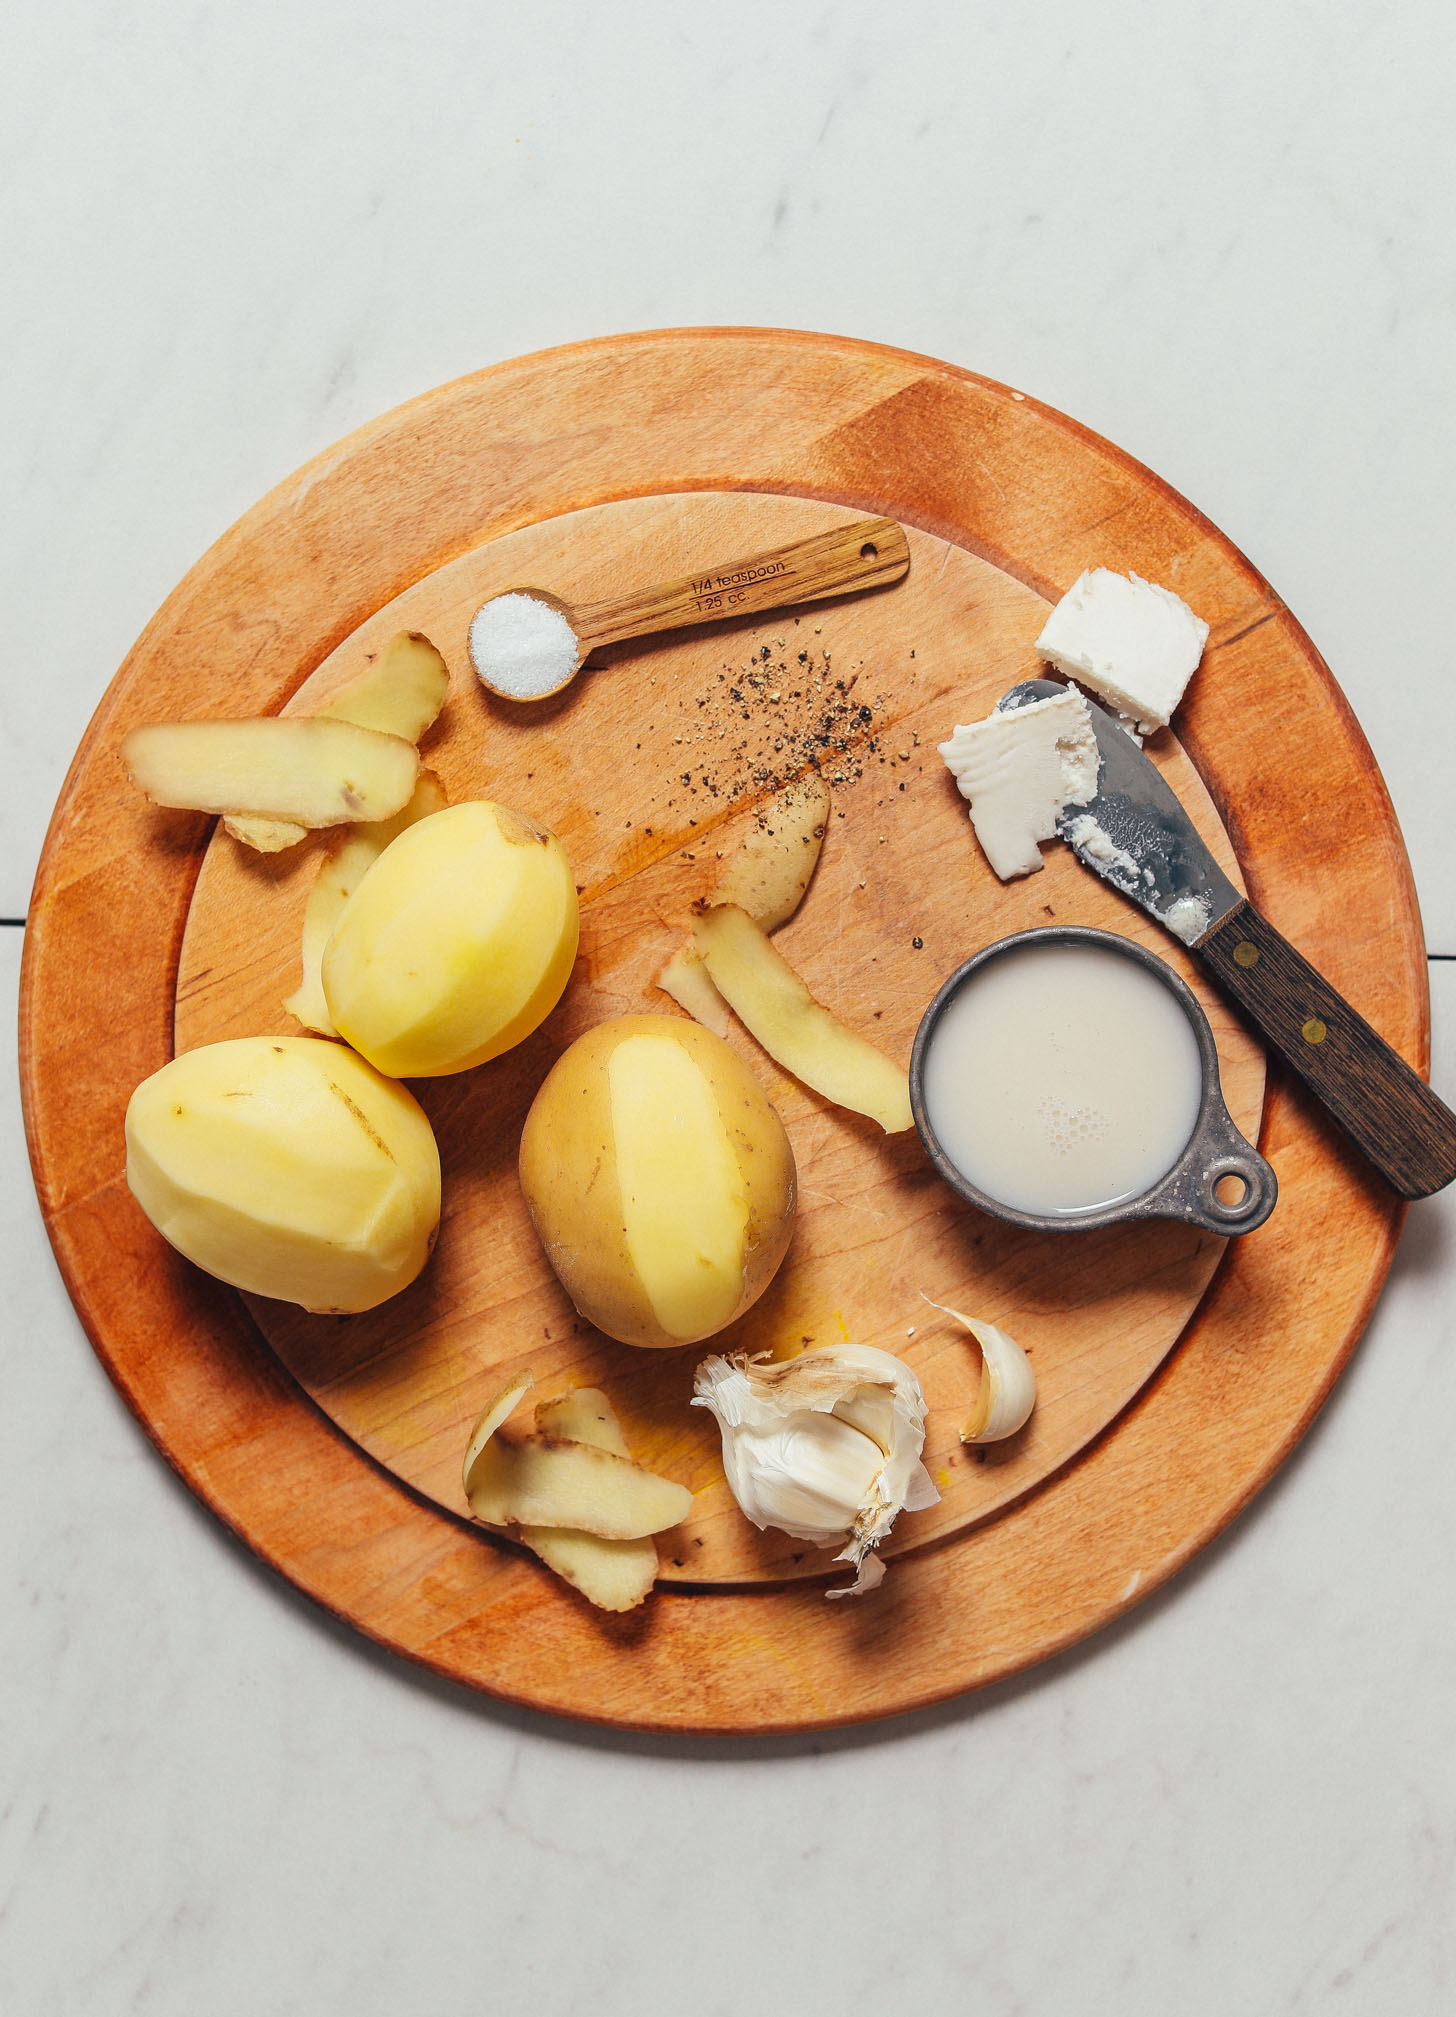 Wood cutting board with ingredients for making our vegan Mashed Potatoes recipe